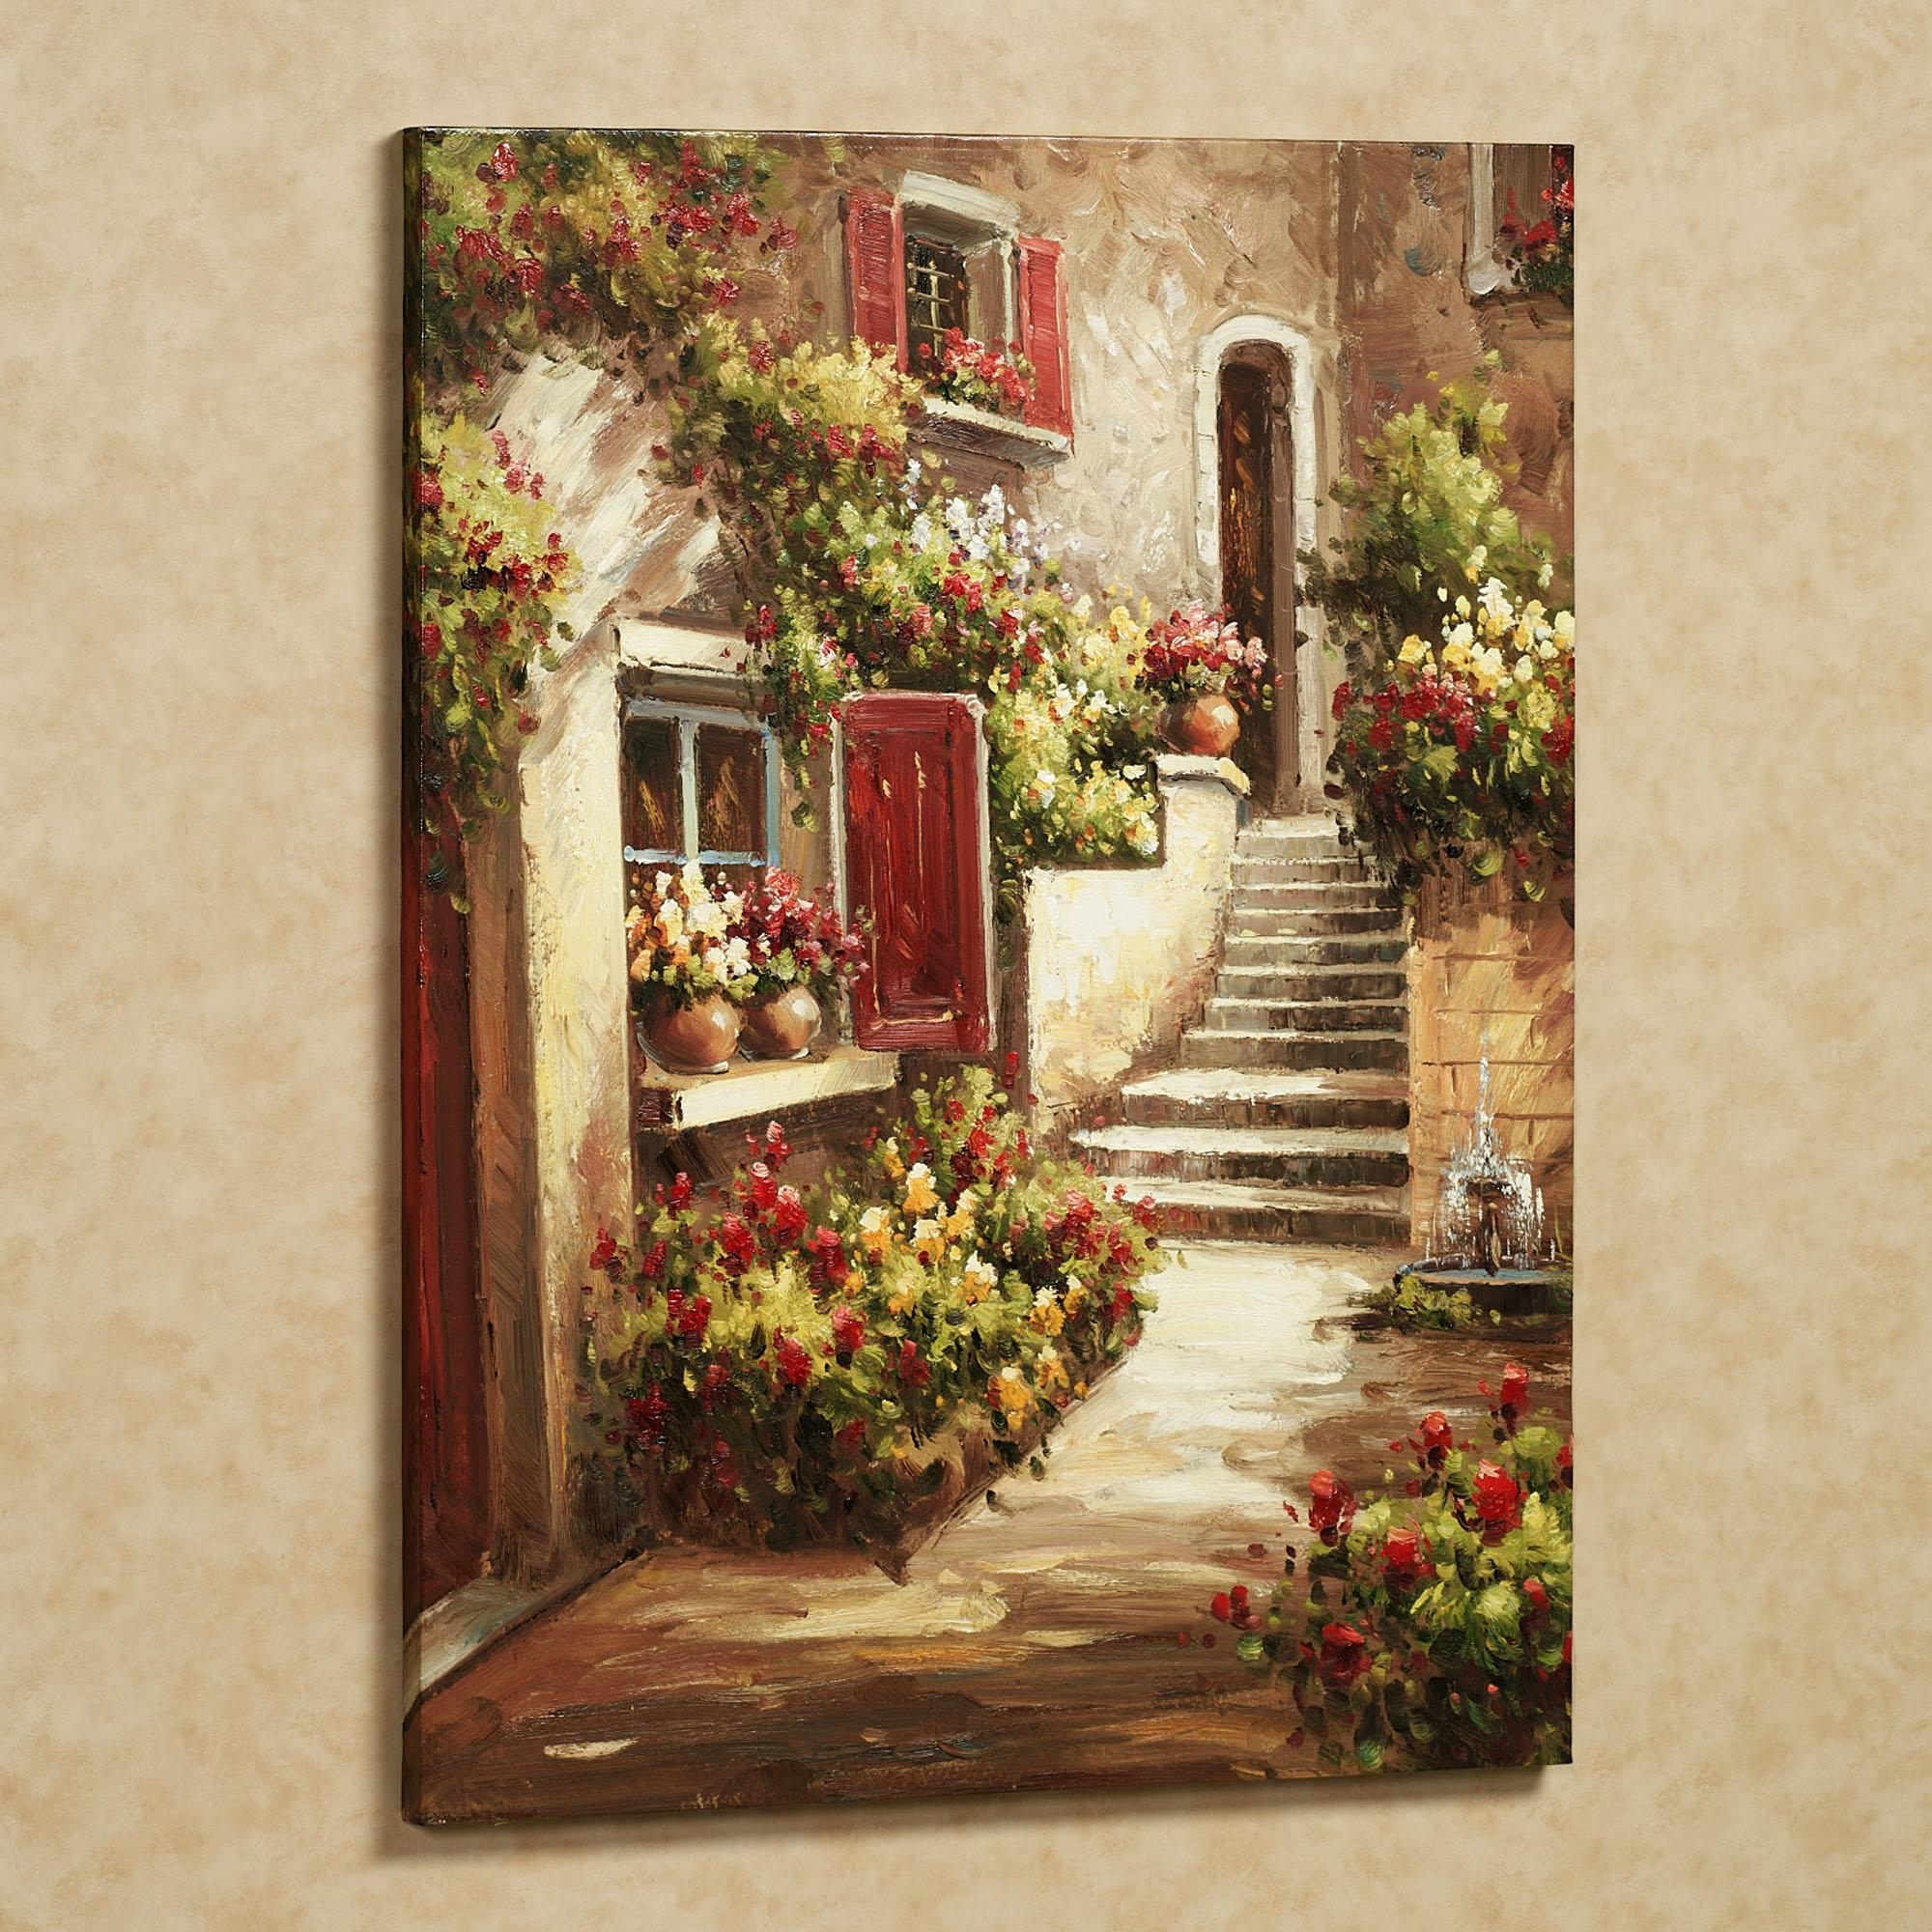 Wall Decor: Italian Wall Decor Pictures (View 3 of 20)